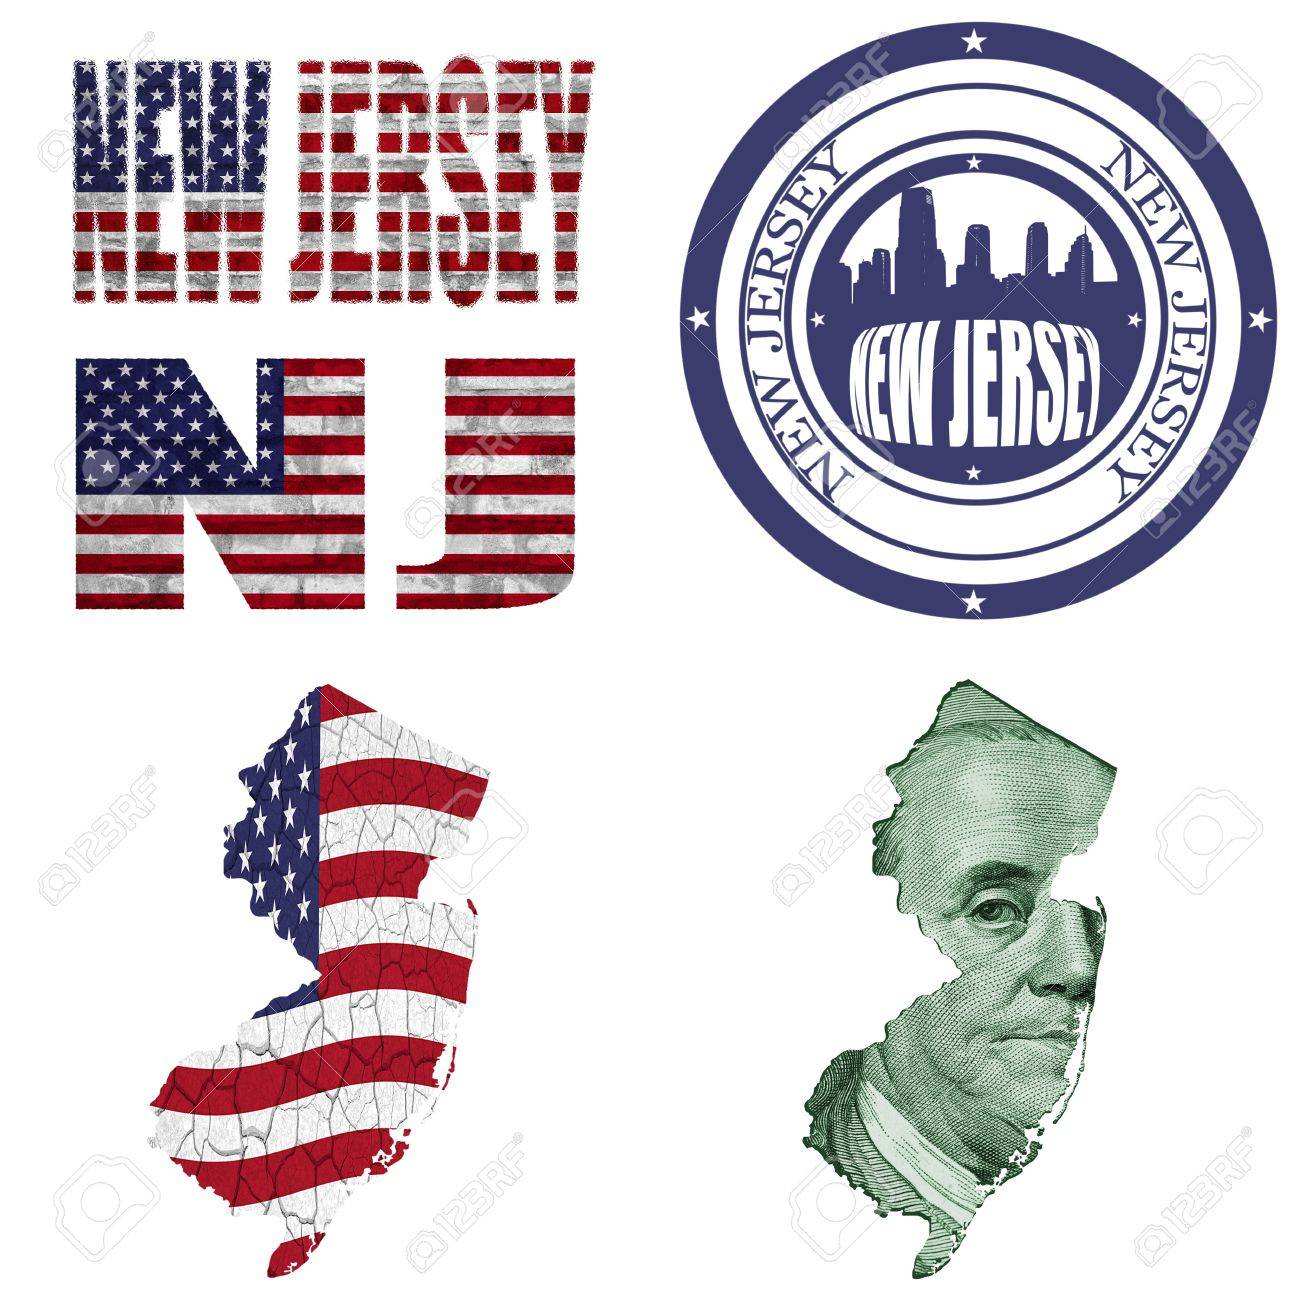 777 New Jersey State Map Cliparts, Stock Vector And Royalty Free ...